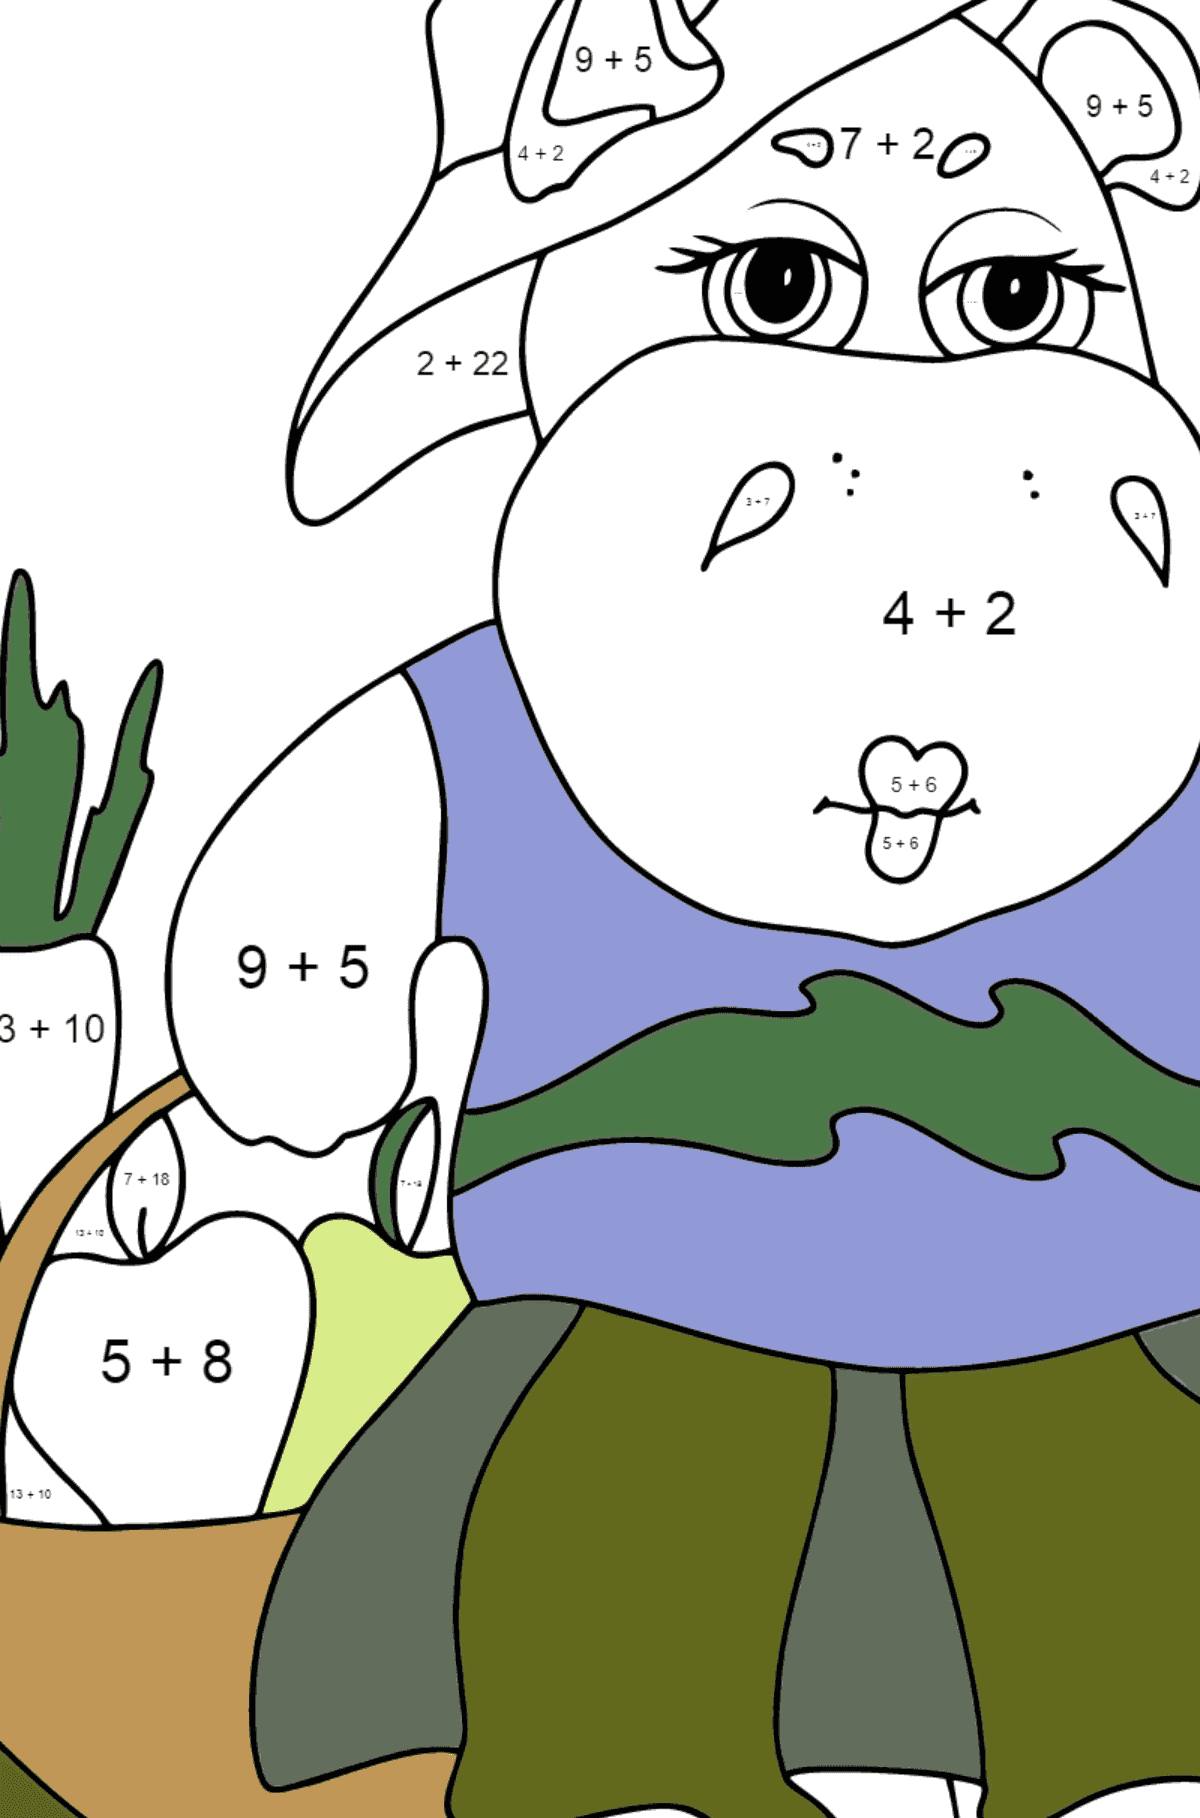 Coloring Page - A Hippo with a Crop Basket for Kids  - Color by Number Addition